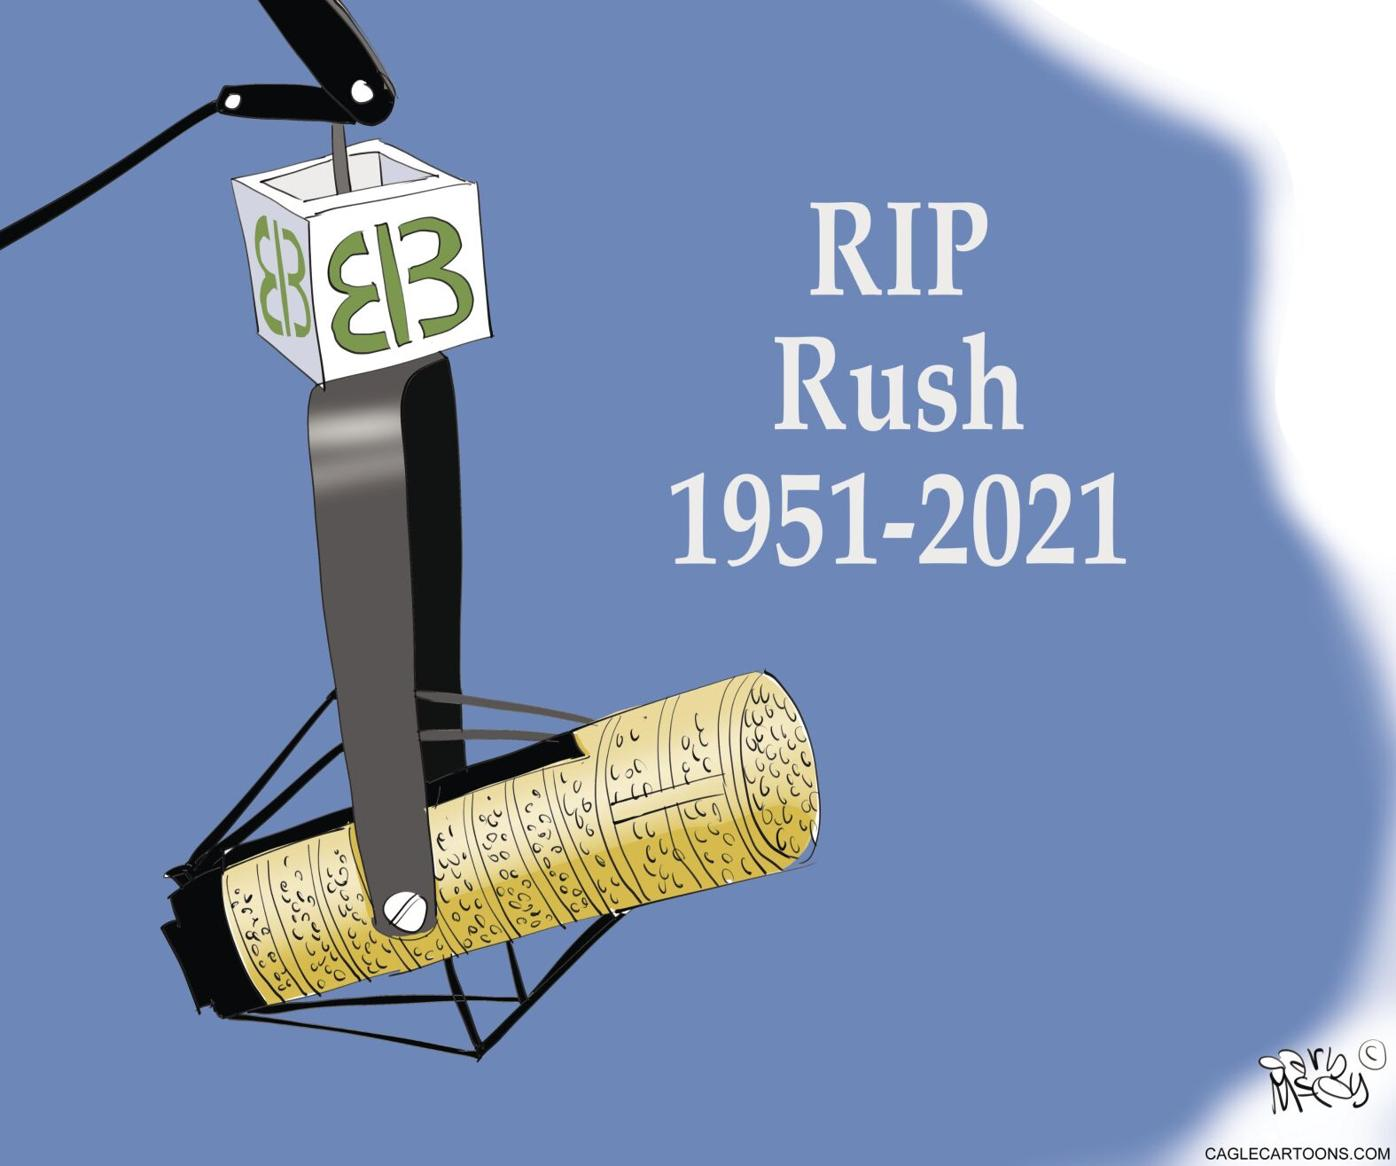 Rush through the years: A collection of editorial cartoons